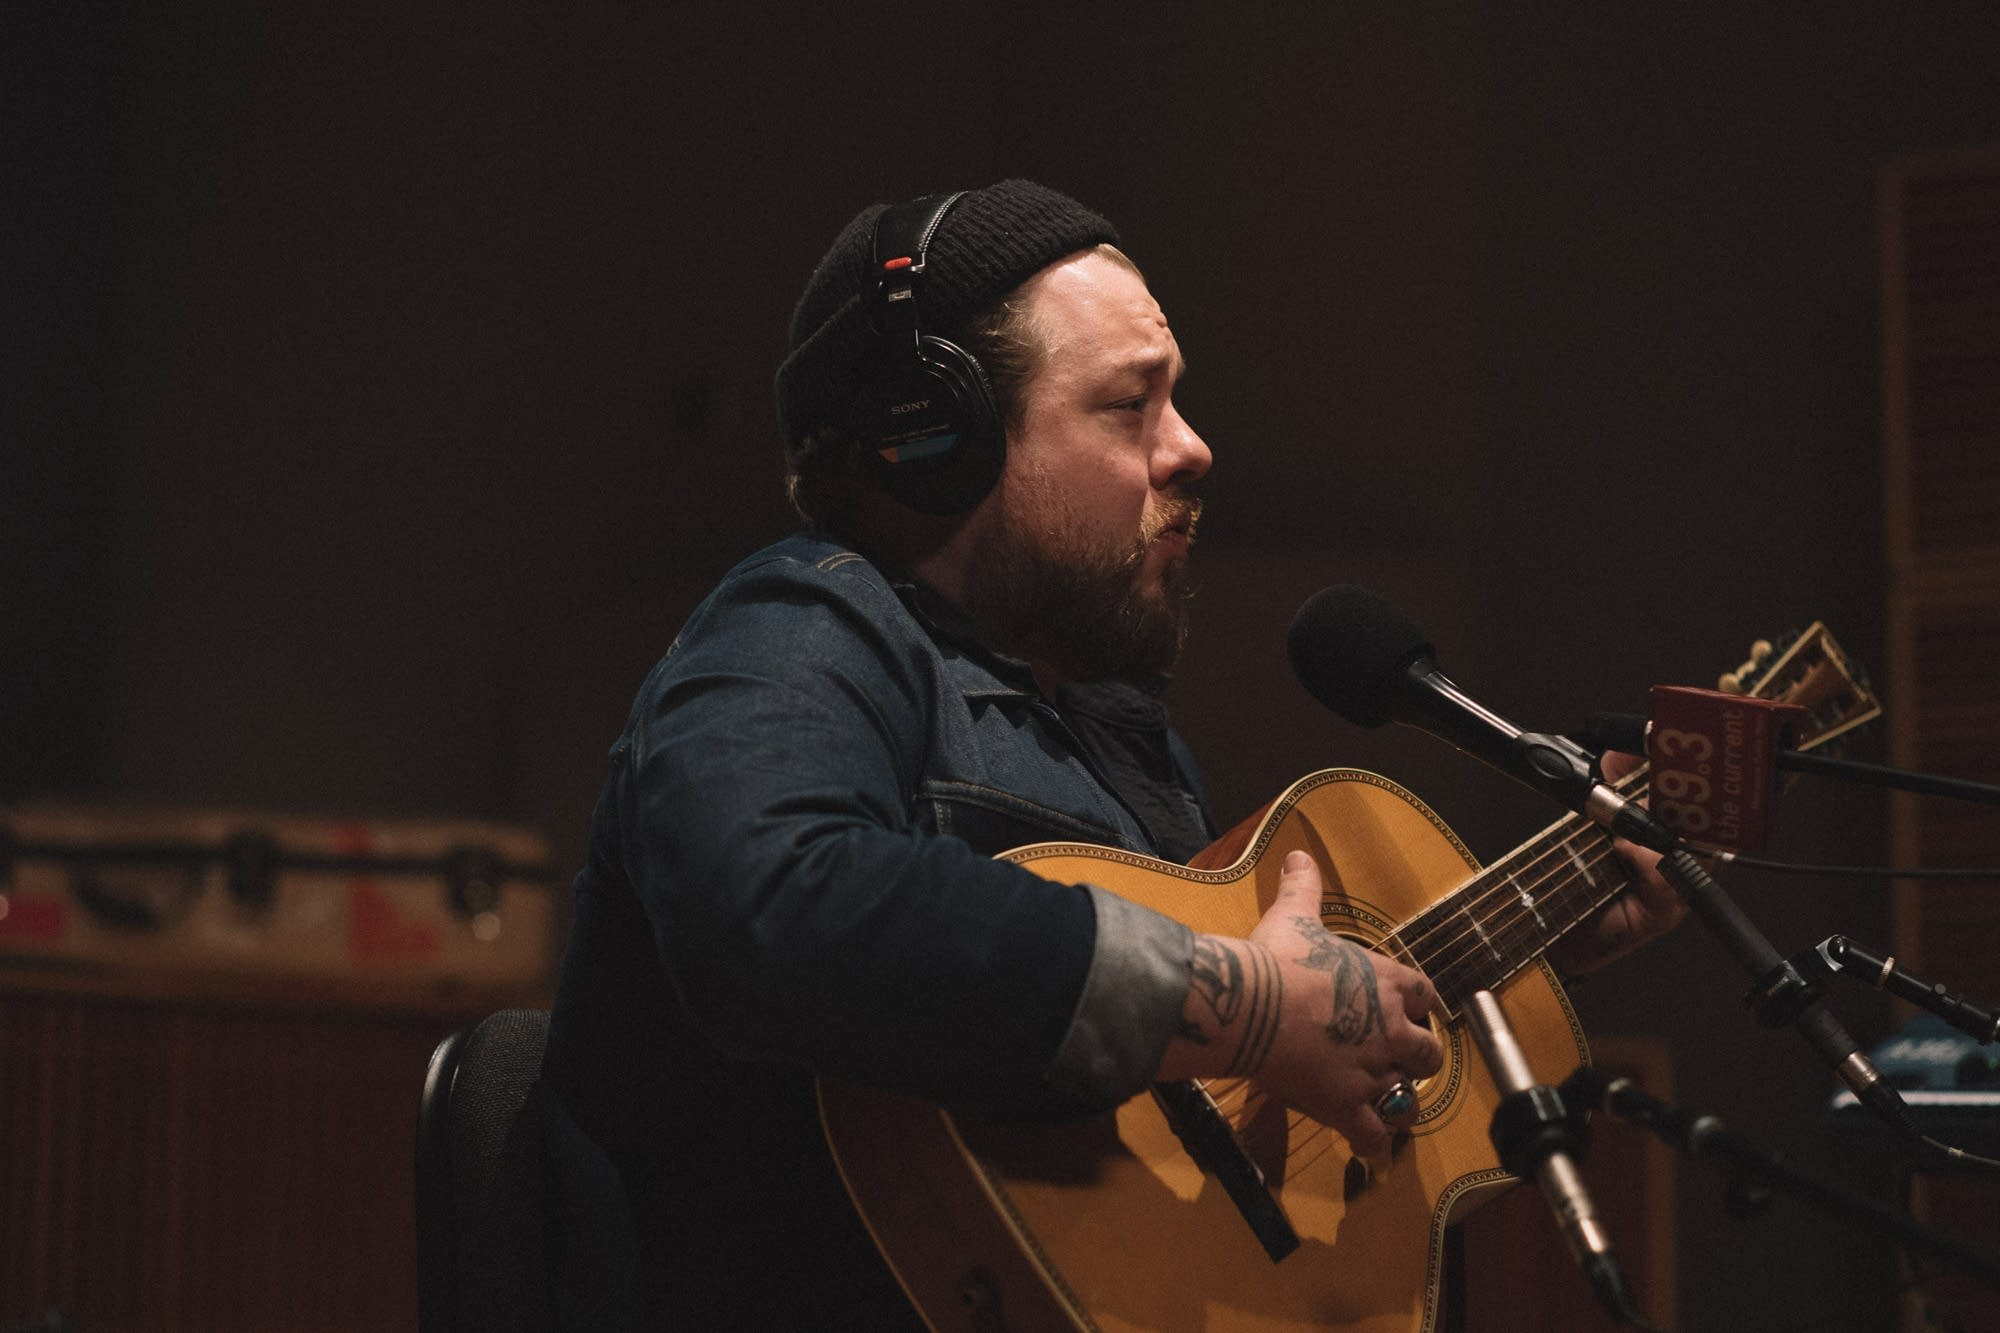 Nathaniel Rateliff performs a solo set at The Current